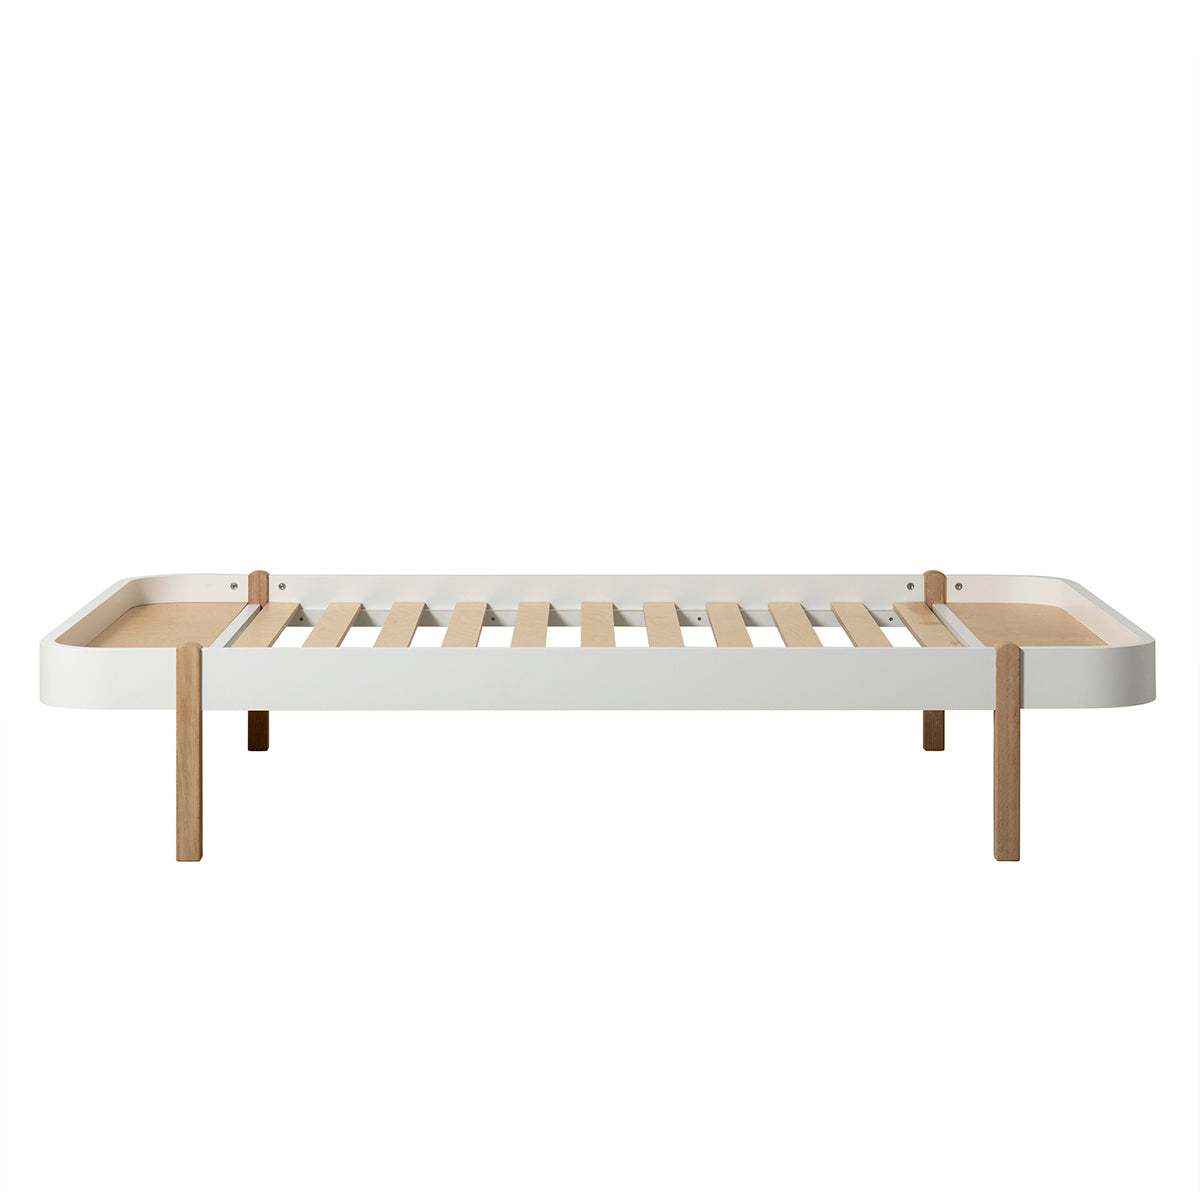 Oliver Furniture Wood Lounger, 120 x 200 cm, weiss/Eiche